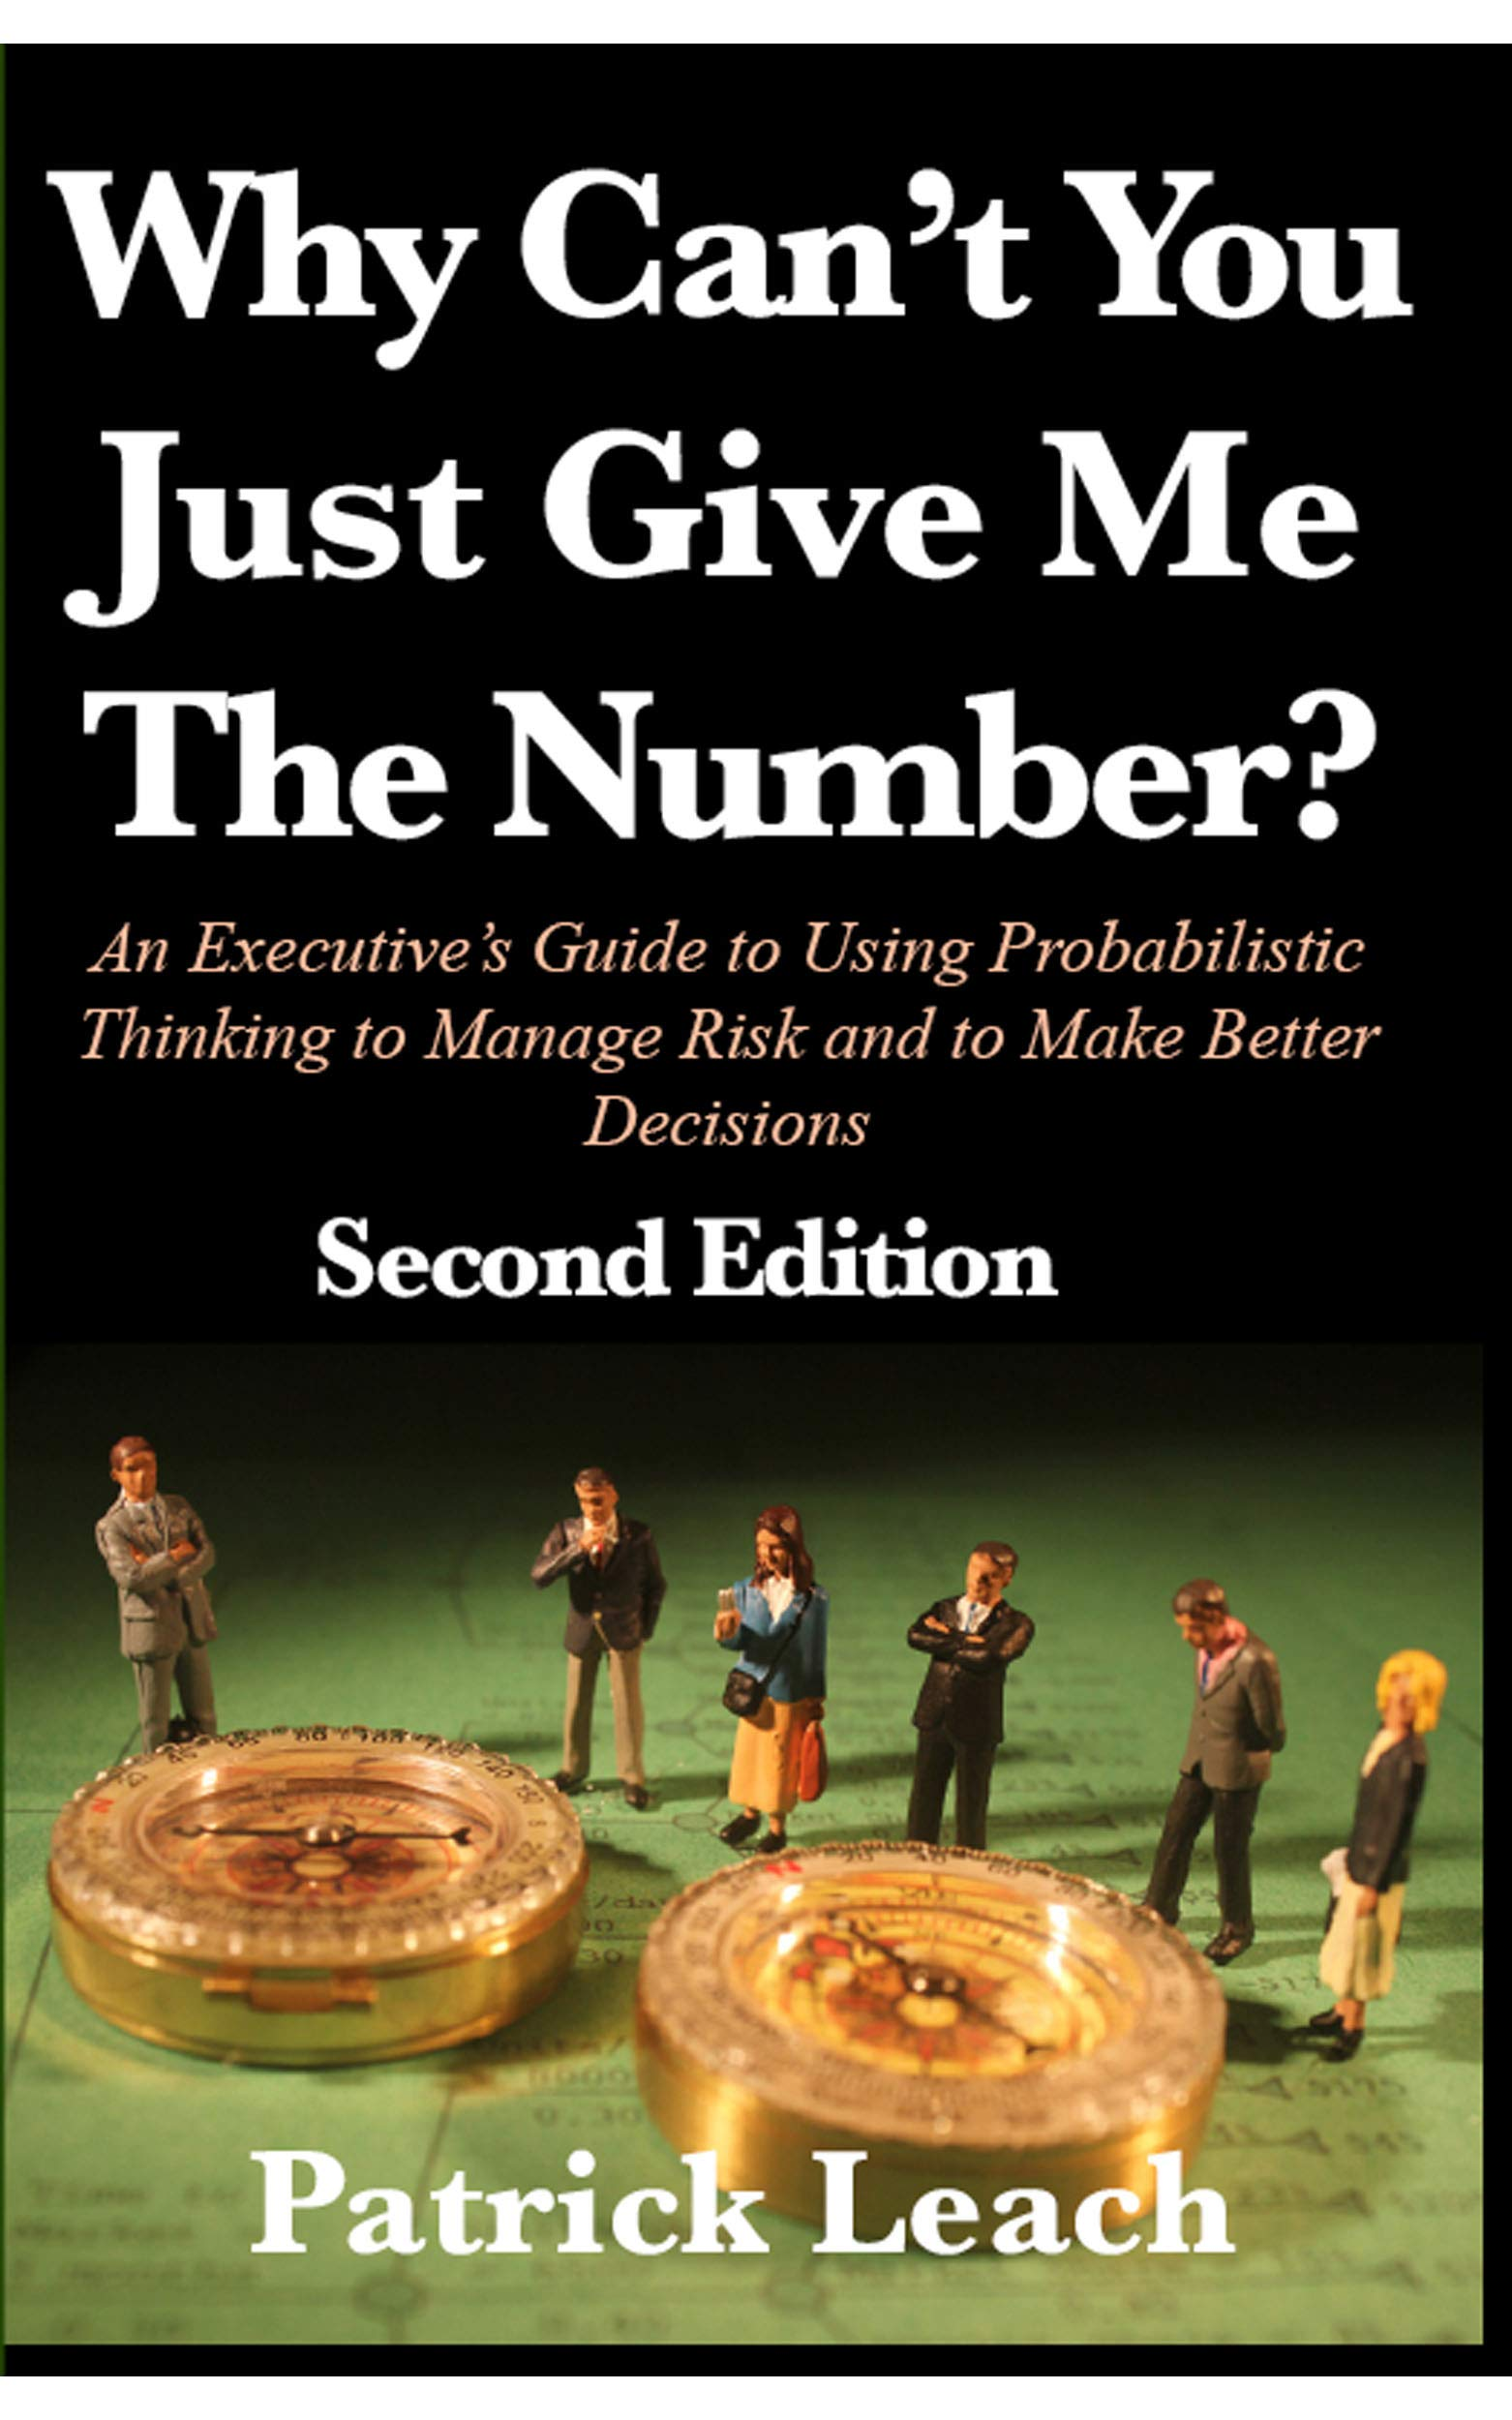 Why Can't You Just Give Me The Number?: An Executive's Guid to Using Probabilistic Thinking to Manage Risk and to Make Better Decisiosn